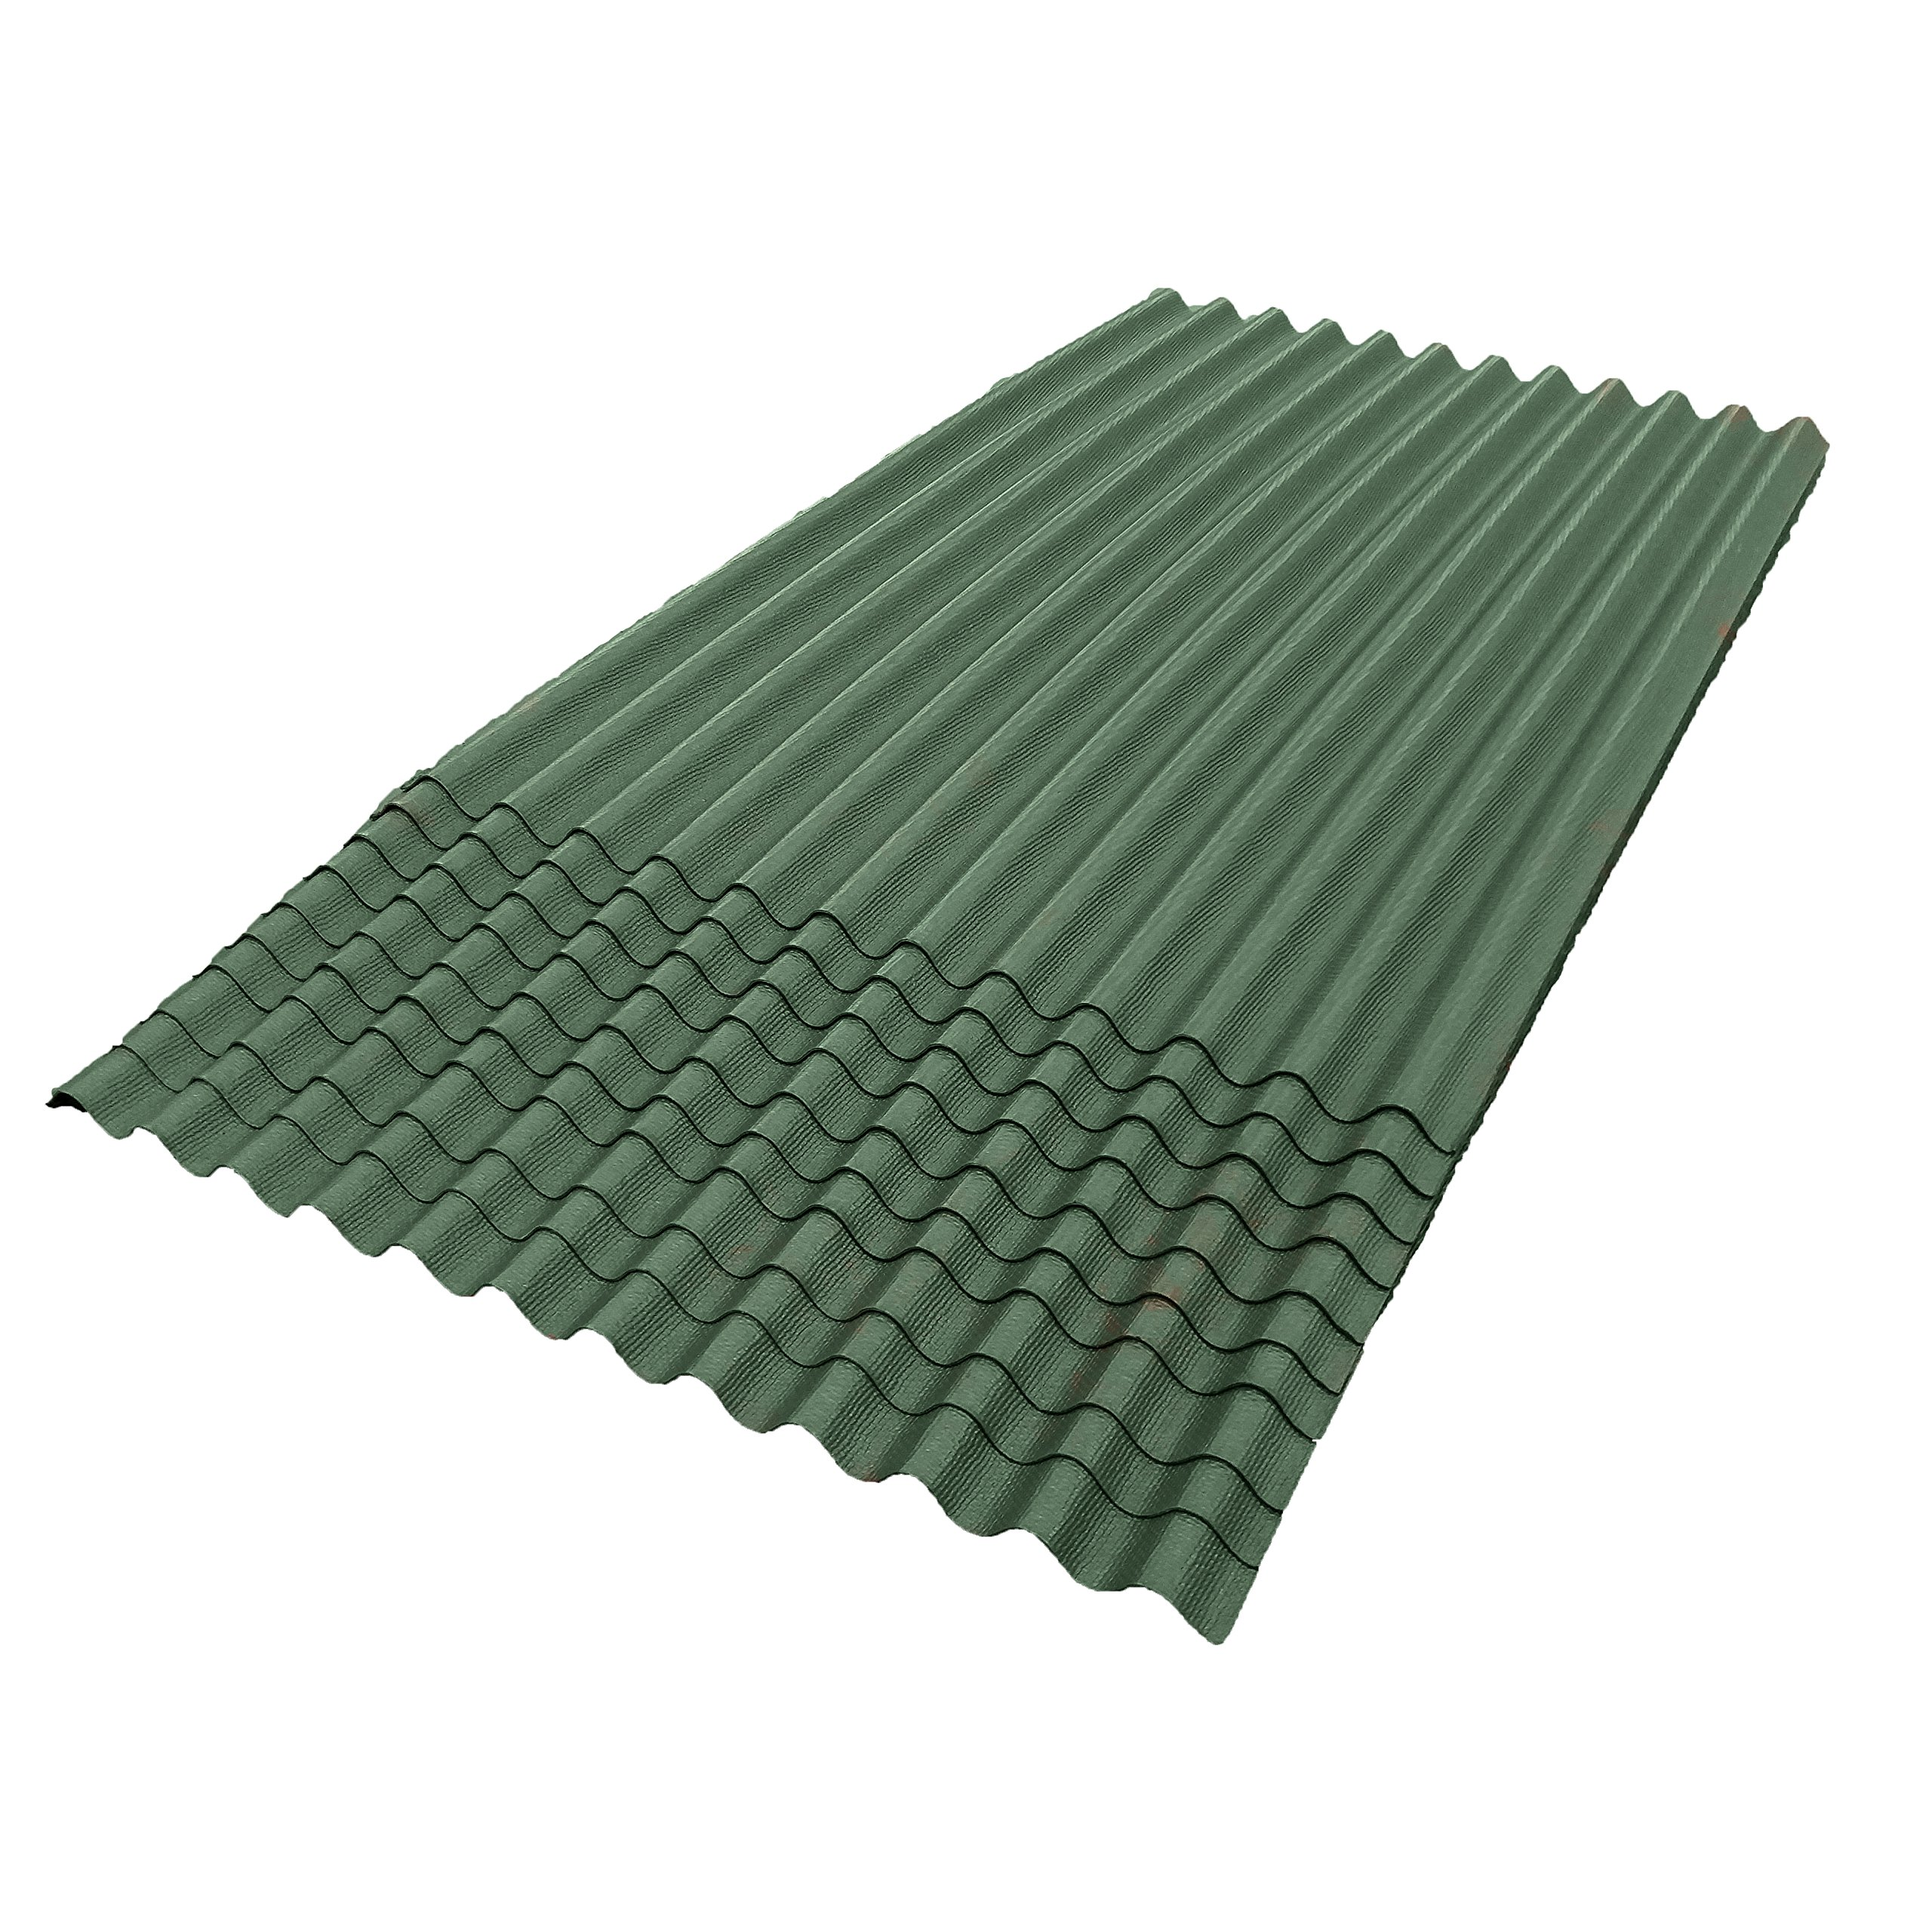 ONDURA 104 Corrugated Asphalt Roofing (10-Pack), Green